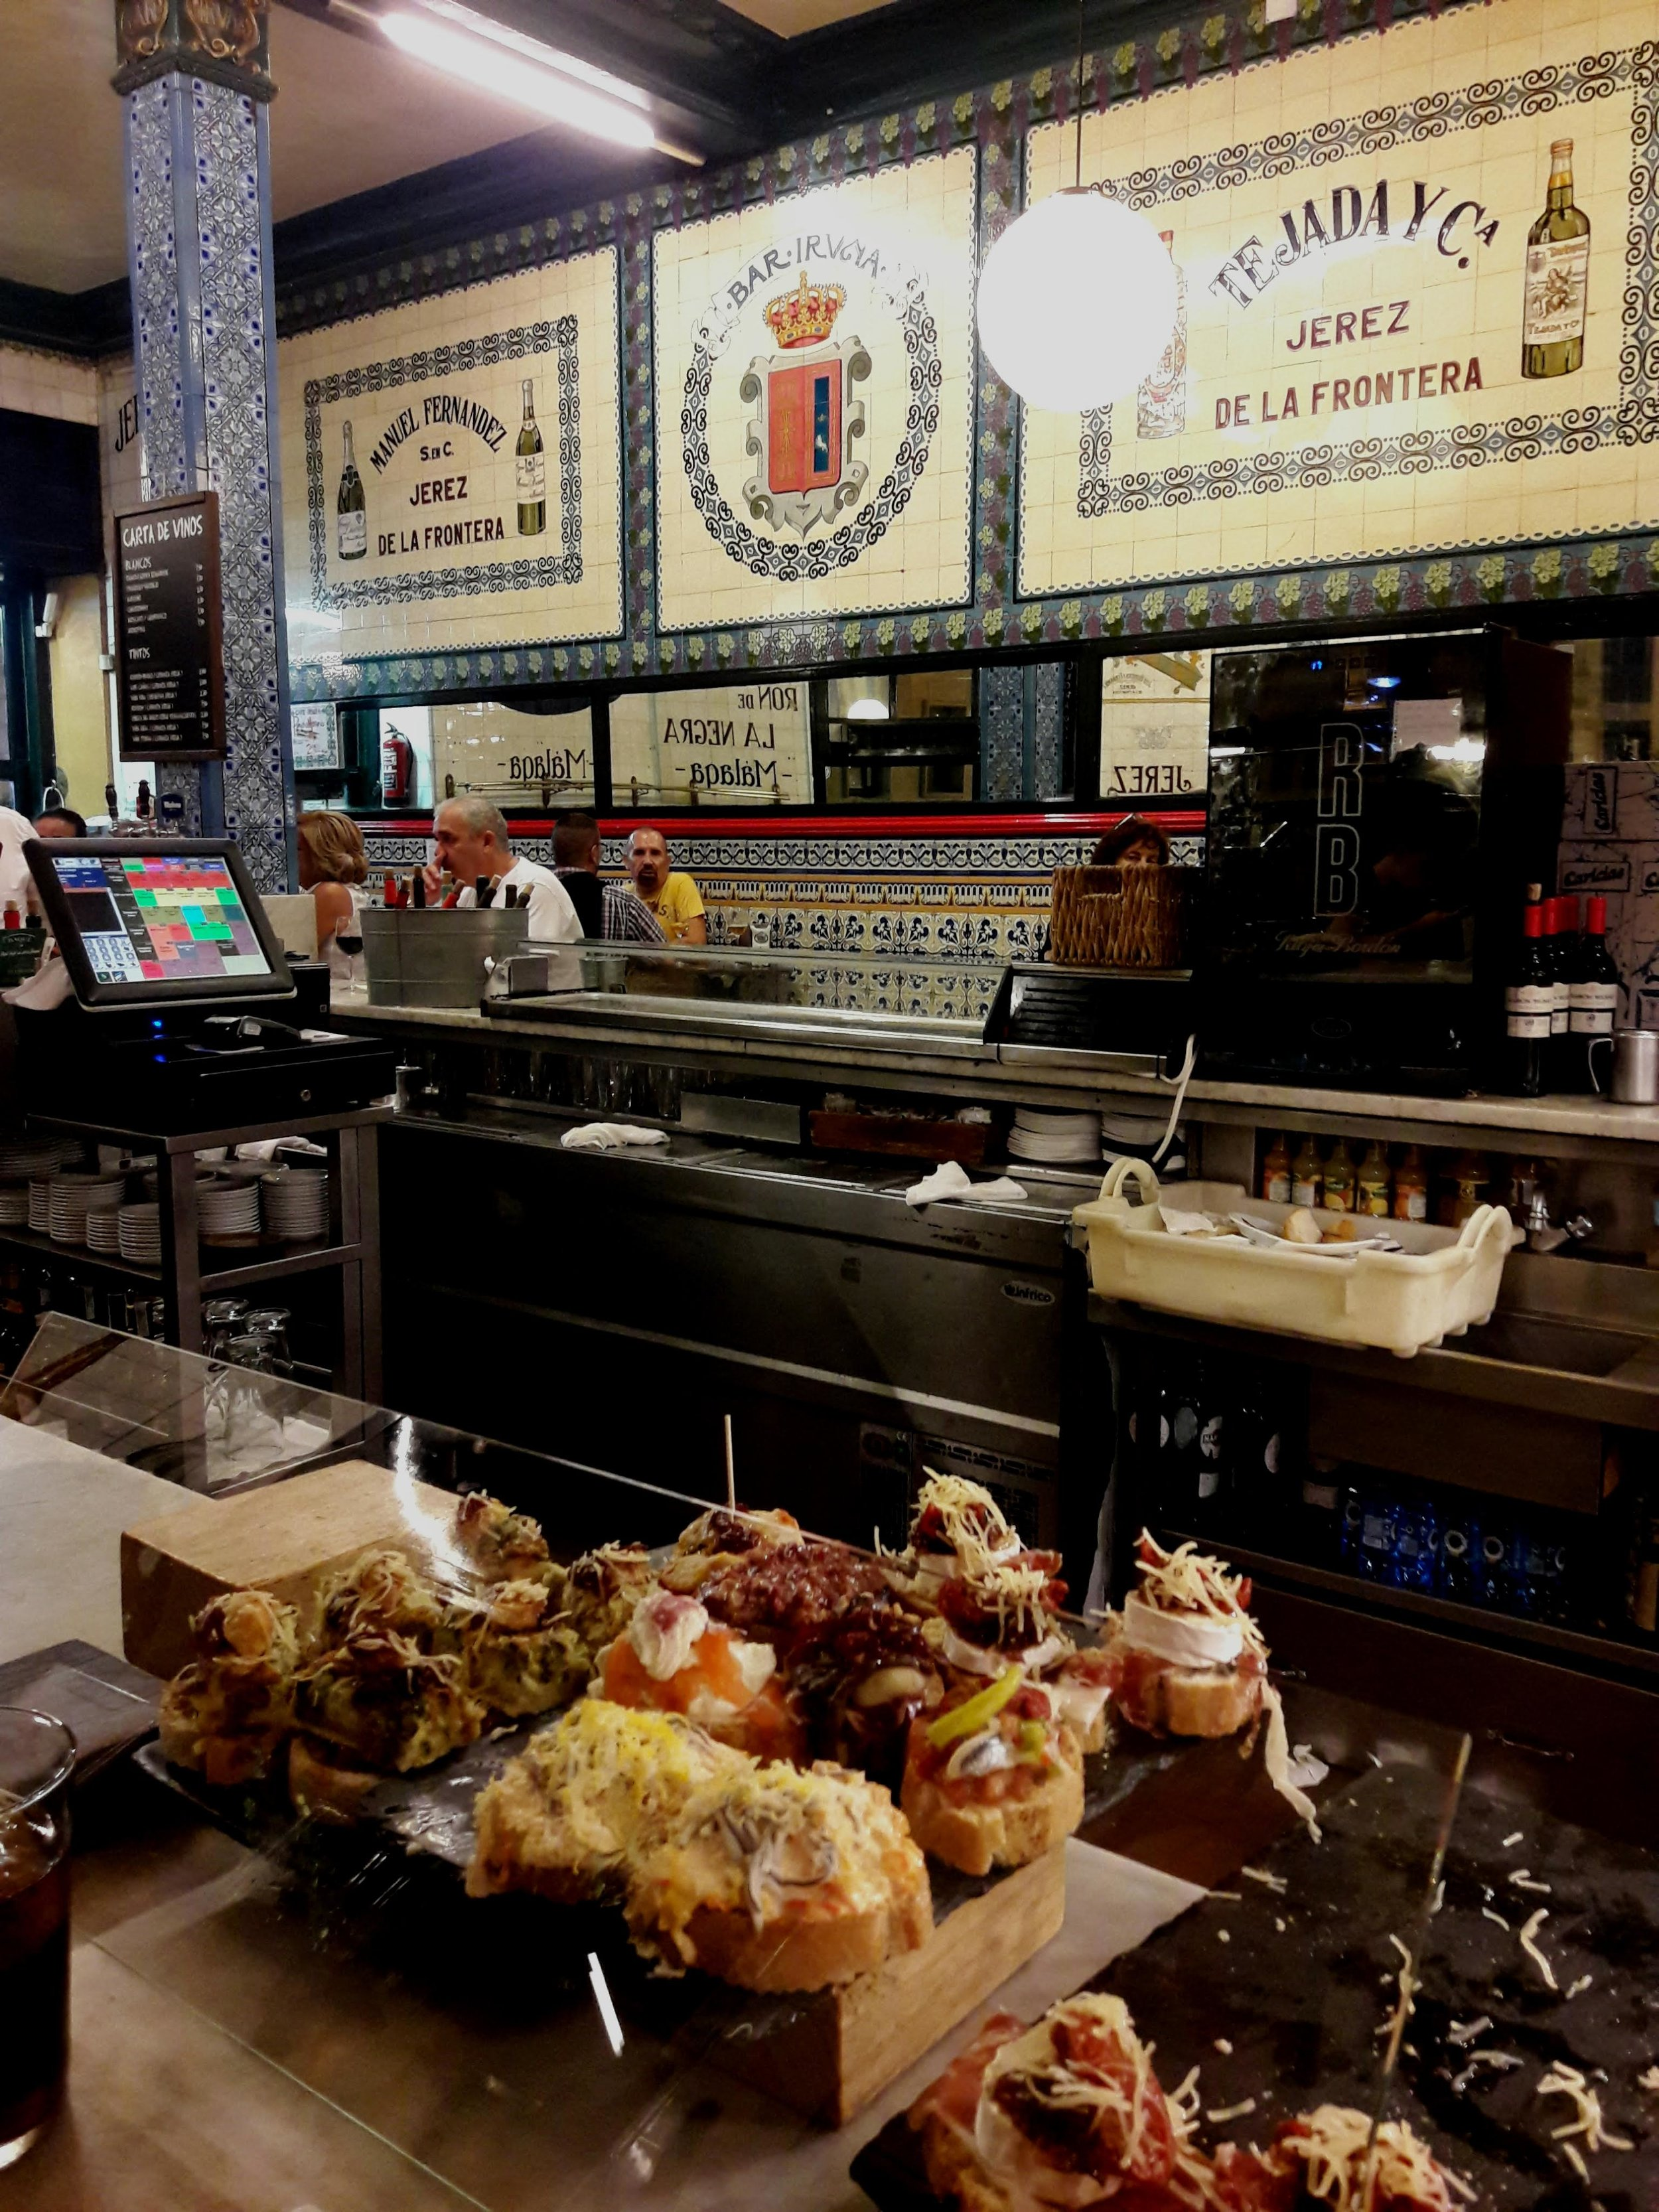 Tapas and pintxos (shown here) are a whole different ballgame!